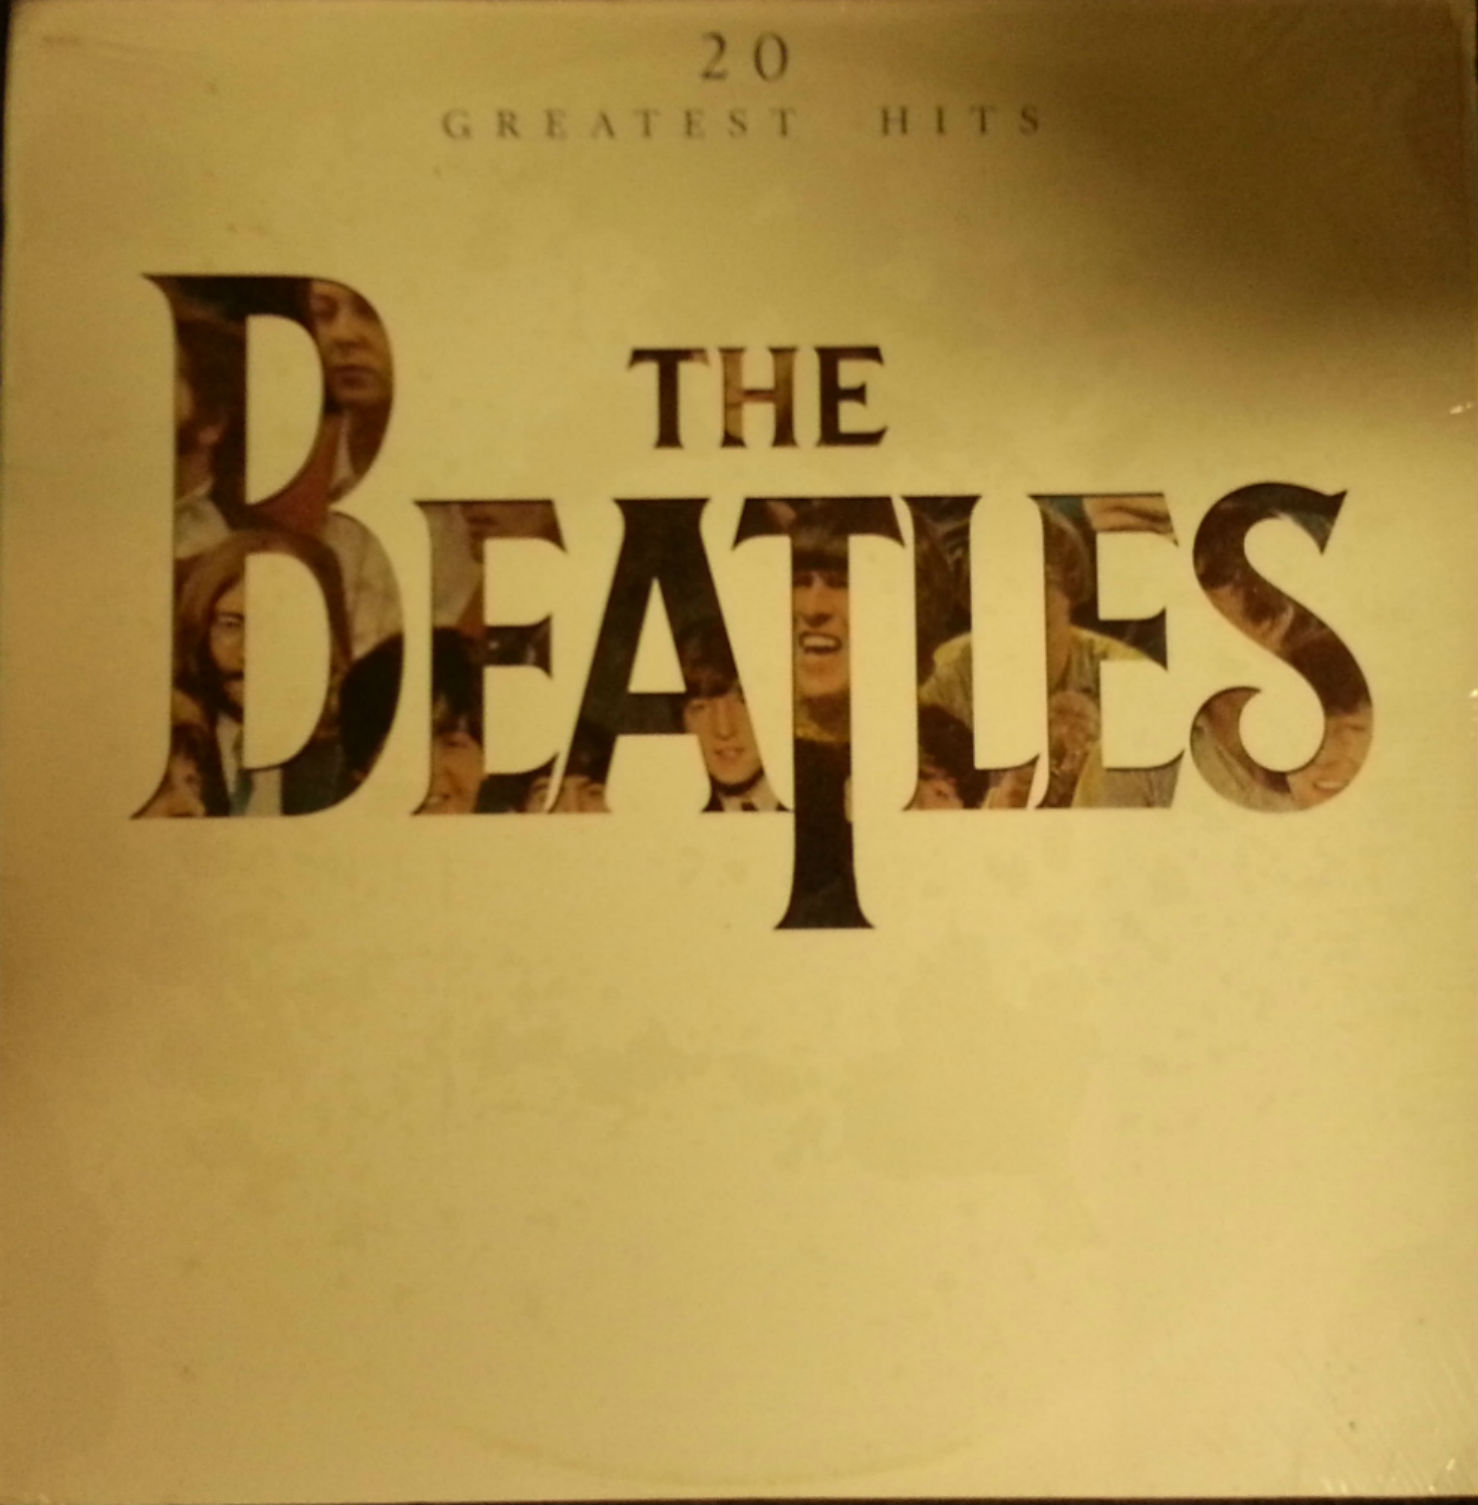 Beatles 20 Greatest Hits Records, LPs, Vinyl And CDs